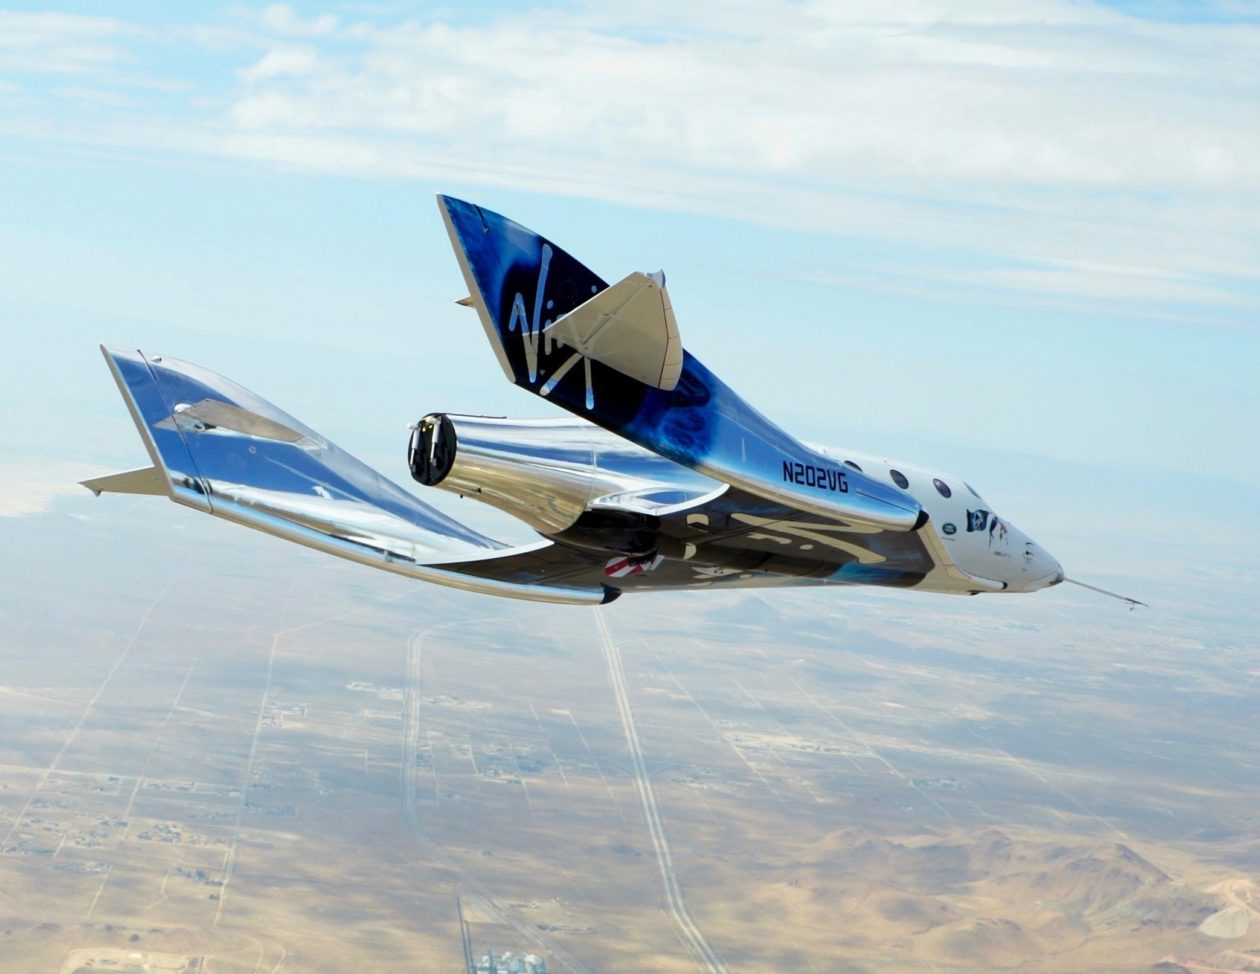 Spaceshiptwo Plane Glides Through A Weightier Test Flight